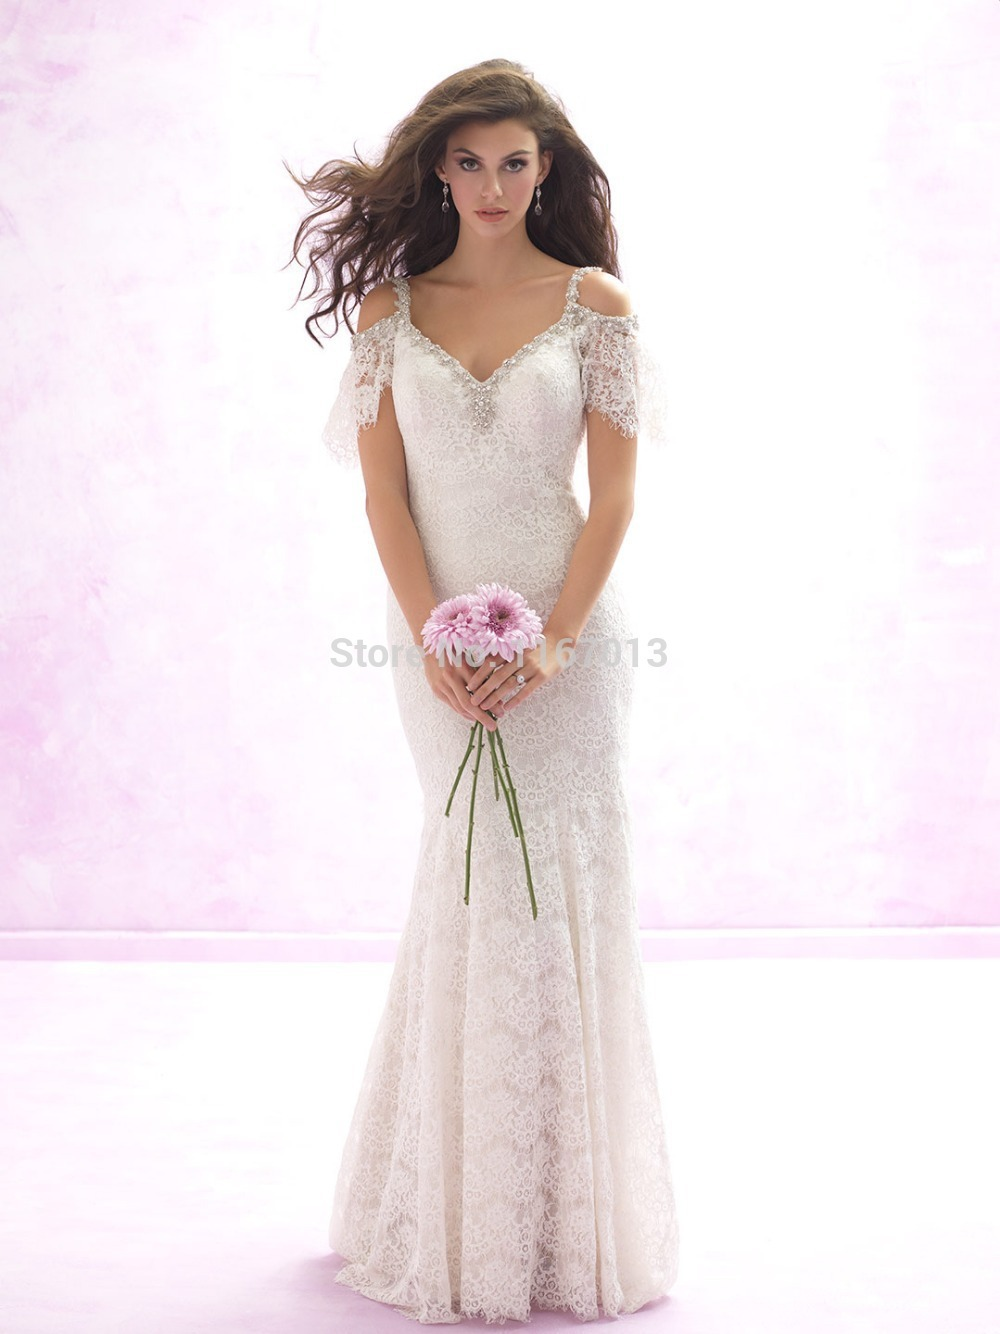 Online shop 2015 romantic white lace mermaid wedding dresses short online shop 2015 romantic white lace mermaid wedding dresses short sleeve deep v neck low back short sleeve crystals court train bridal gown aliexpress ombrellifo Gallery